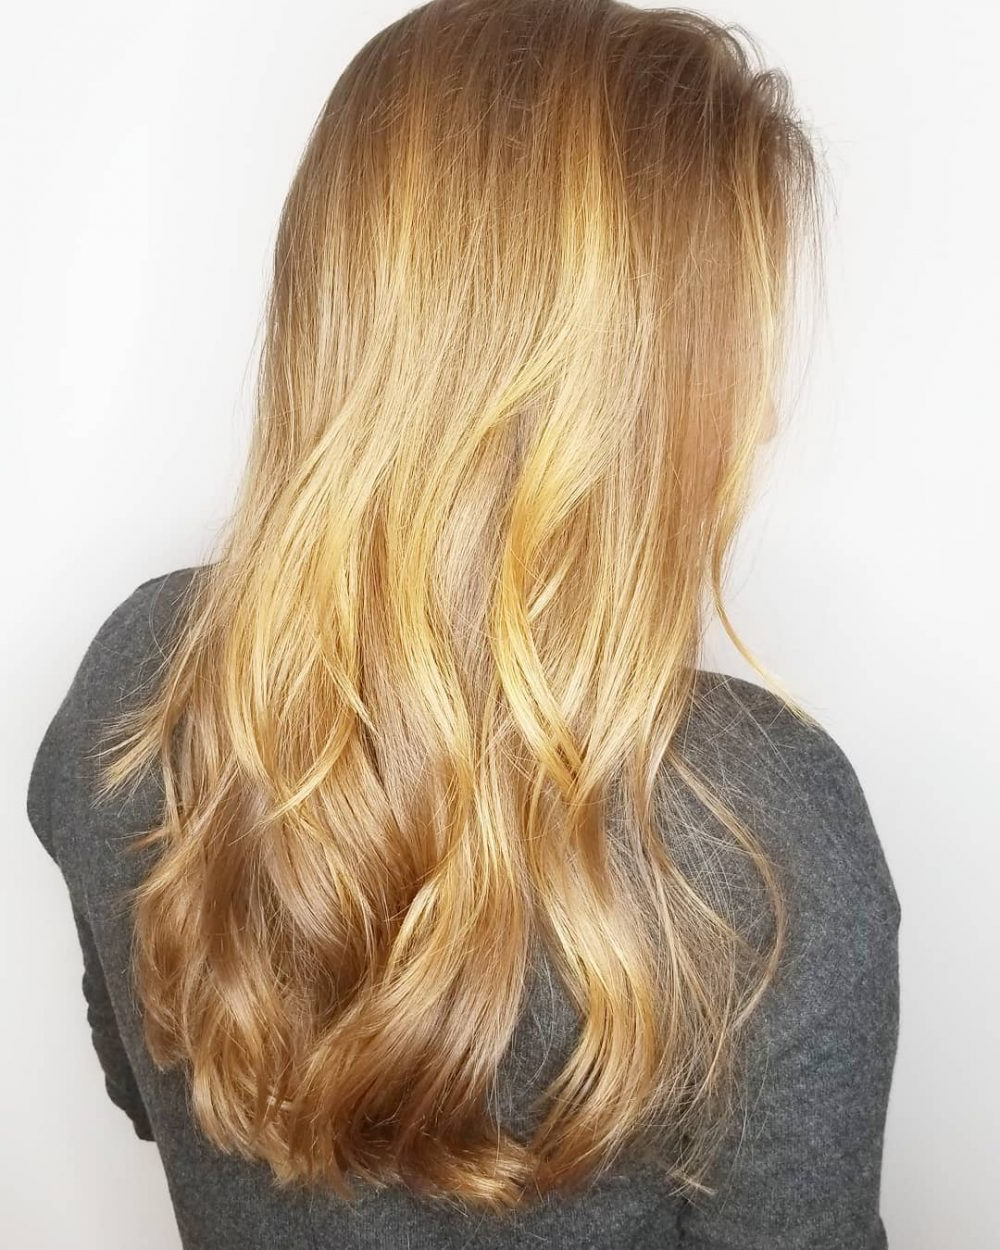 Current Shiny Caramel Layers Long Shag Haircuts Within 36 Perfect Hairstyles For Long Thin Hair (Trending For 2019!) (View 9 of 20)